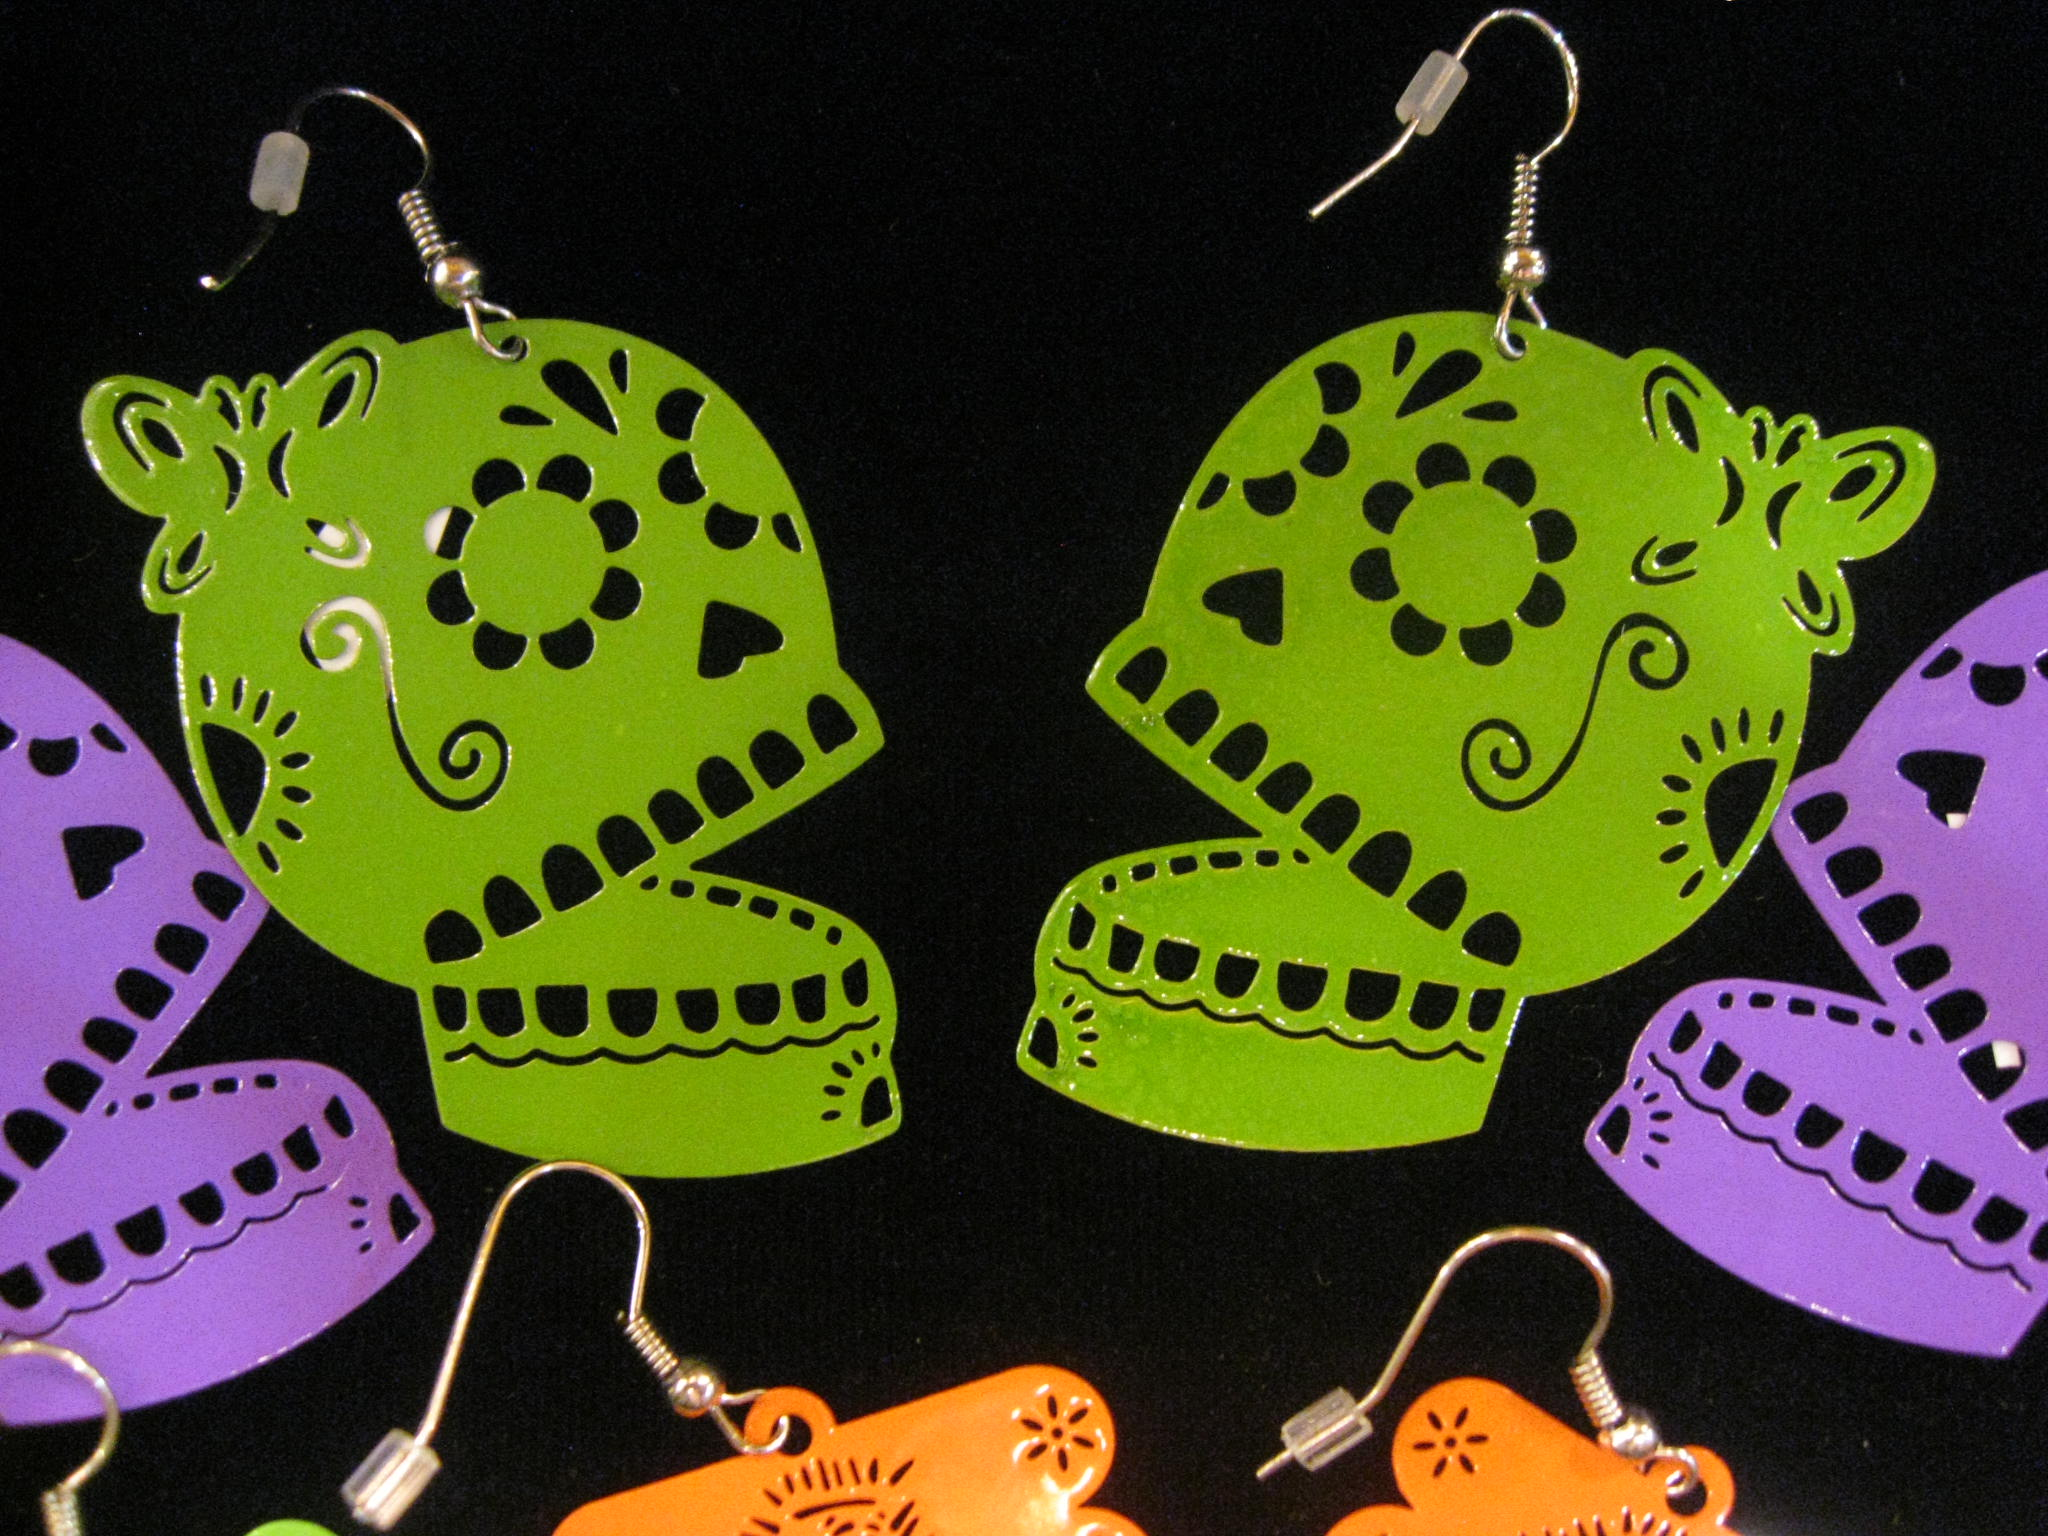 New! Papel Picado Earrings and Sacred Heart Jewelry!